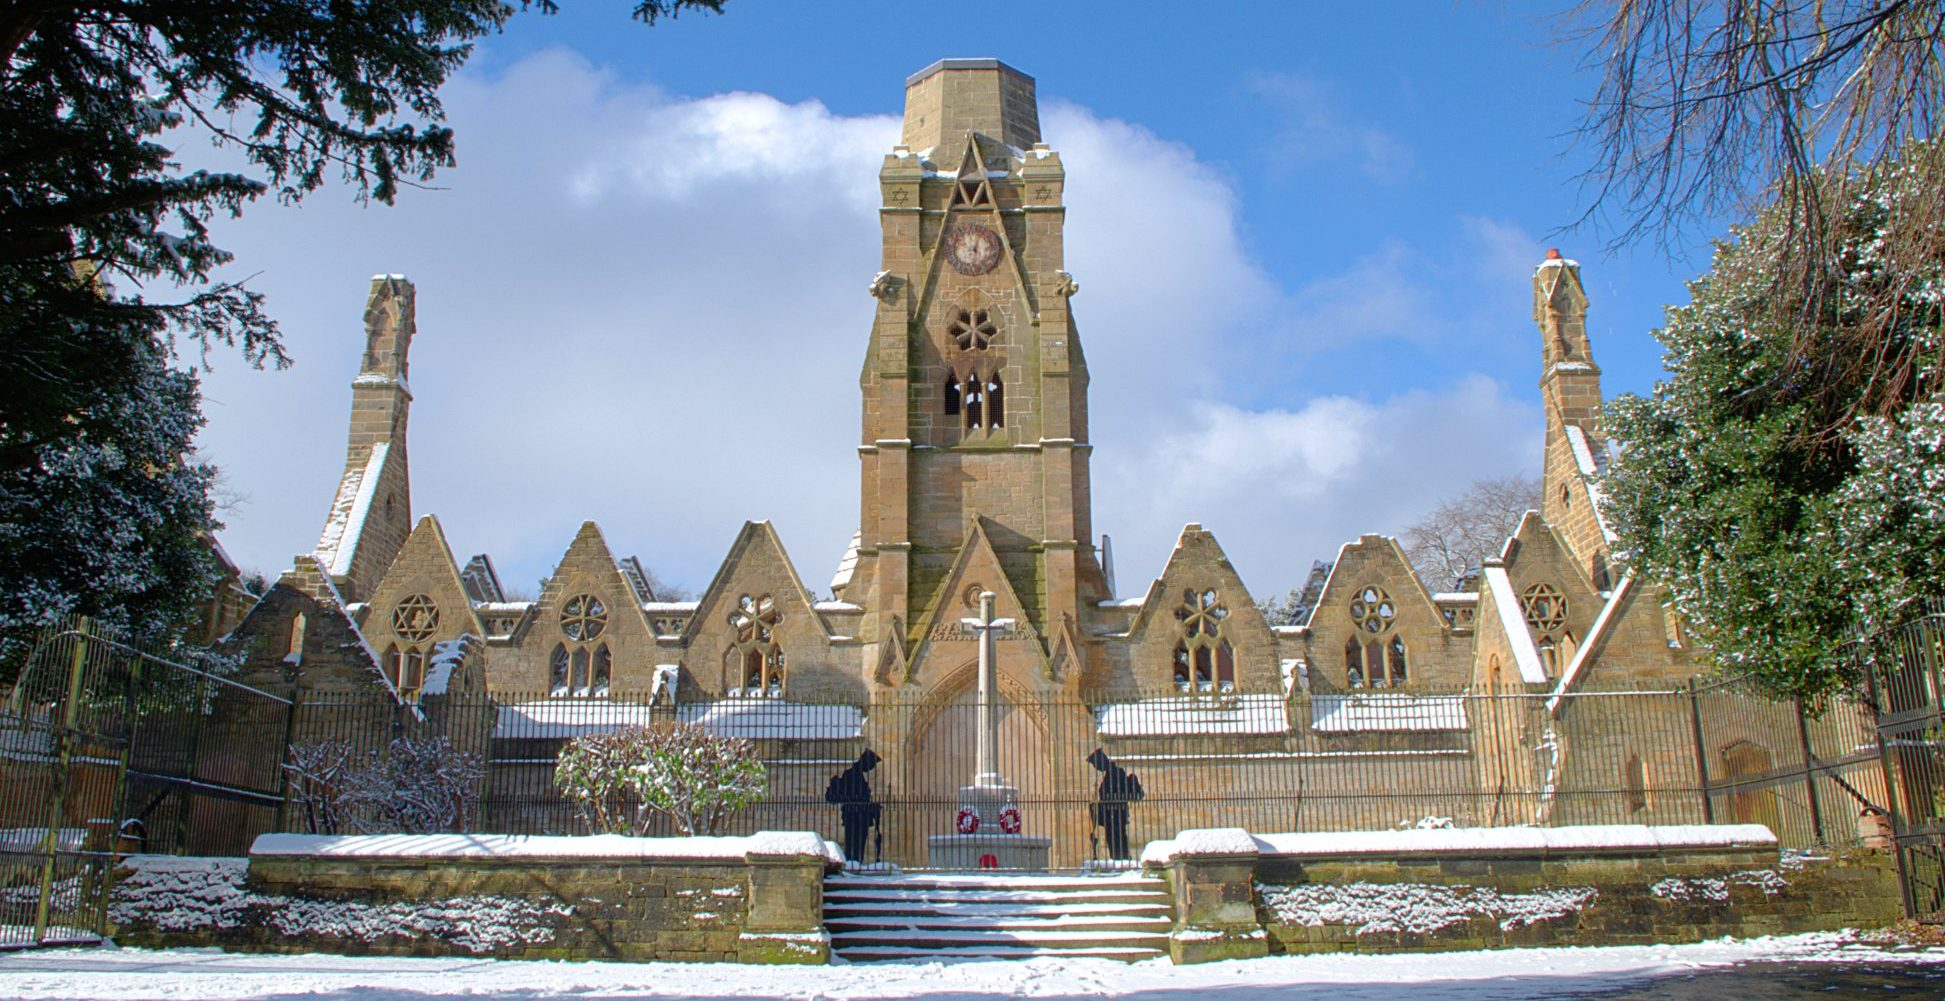 Flaybrik Chapel in the snow